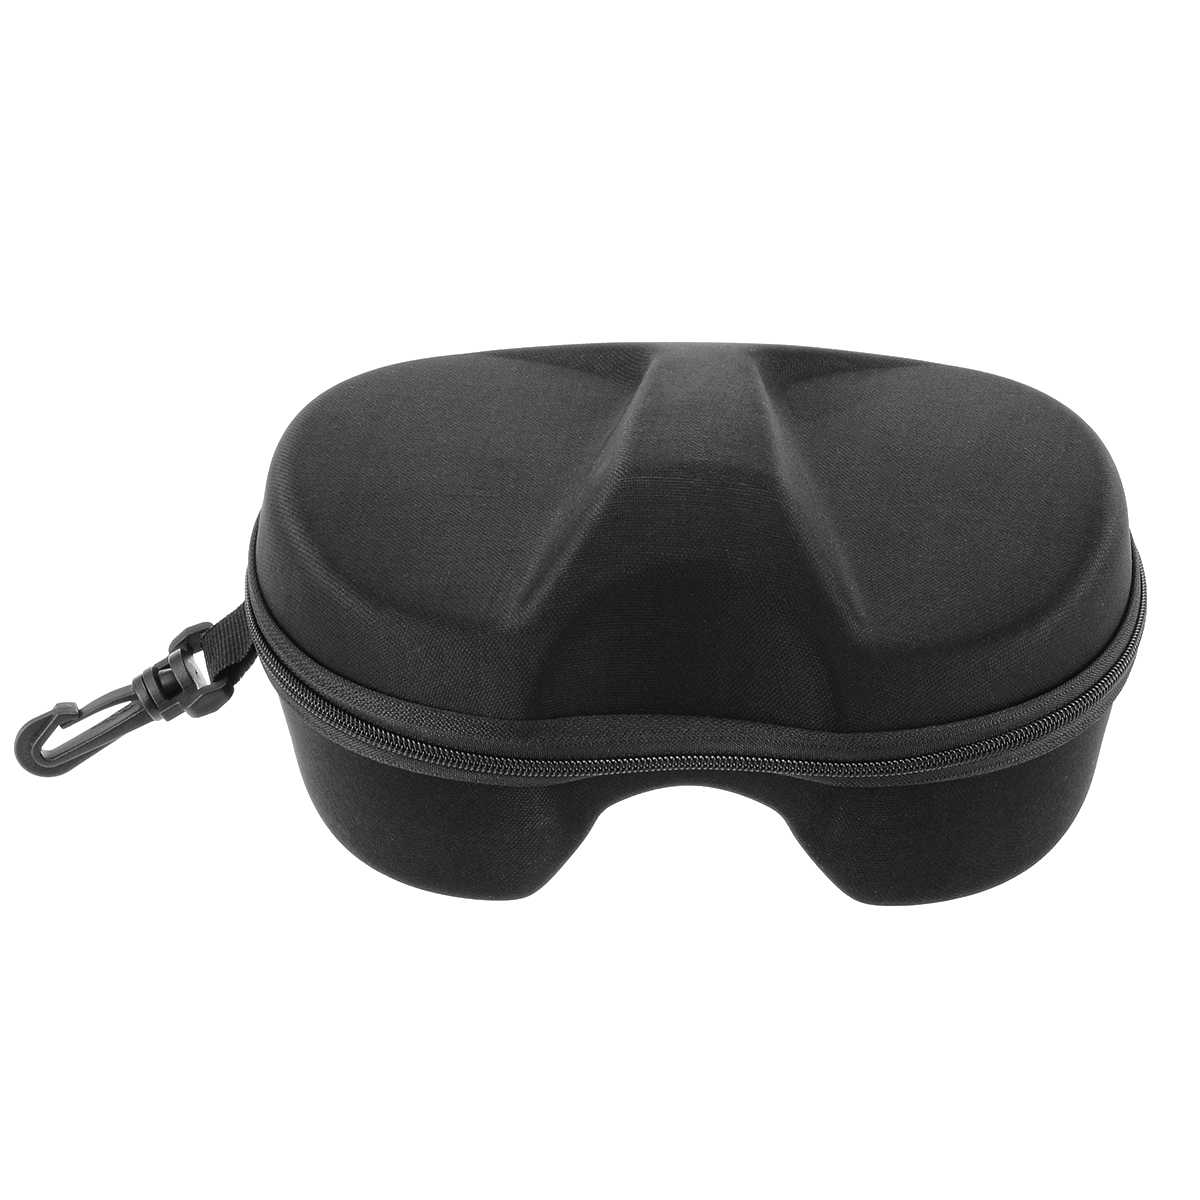 Mayitr Diving Mask Box Mask Scuba Glasses Case Pouch Underwater Storage Box Bag Box Case Protector Container For Gopro Practical